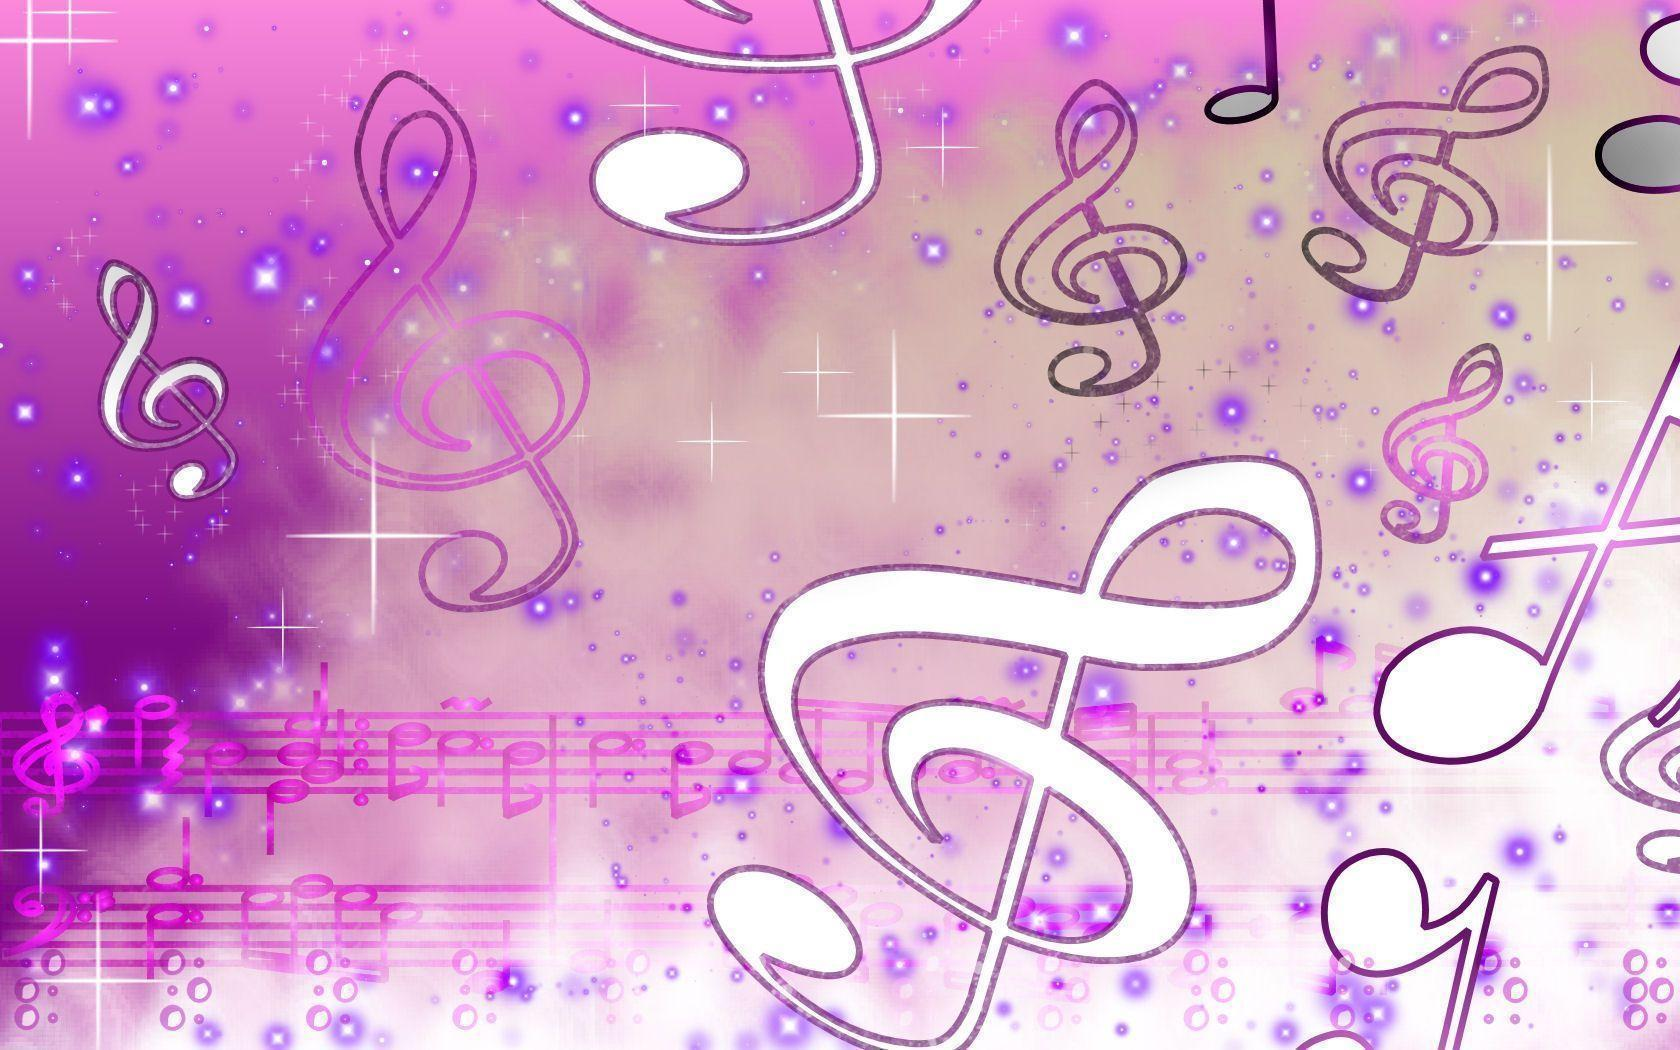 Pink Music Wallpapers - Wallpaper Cave